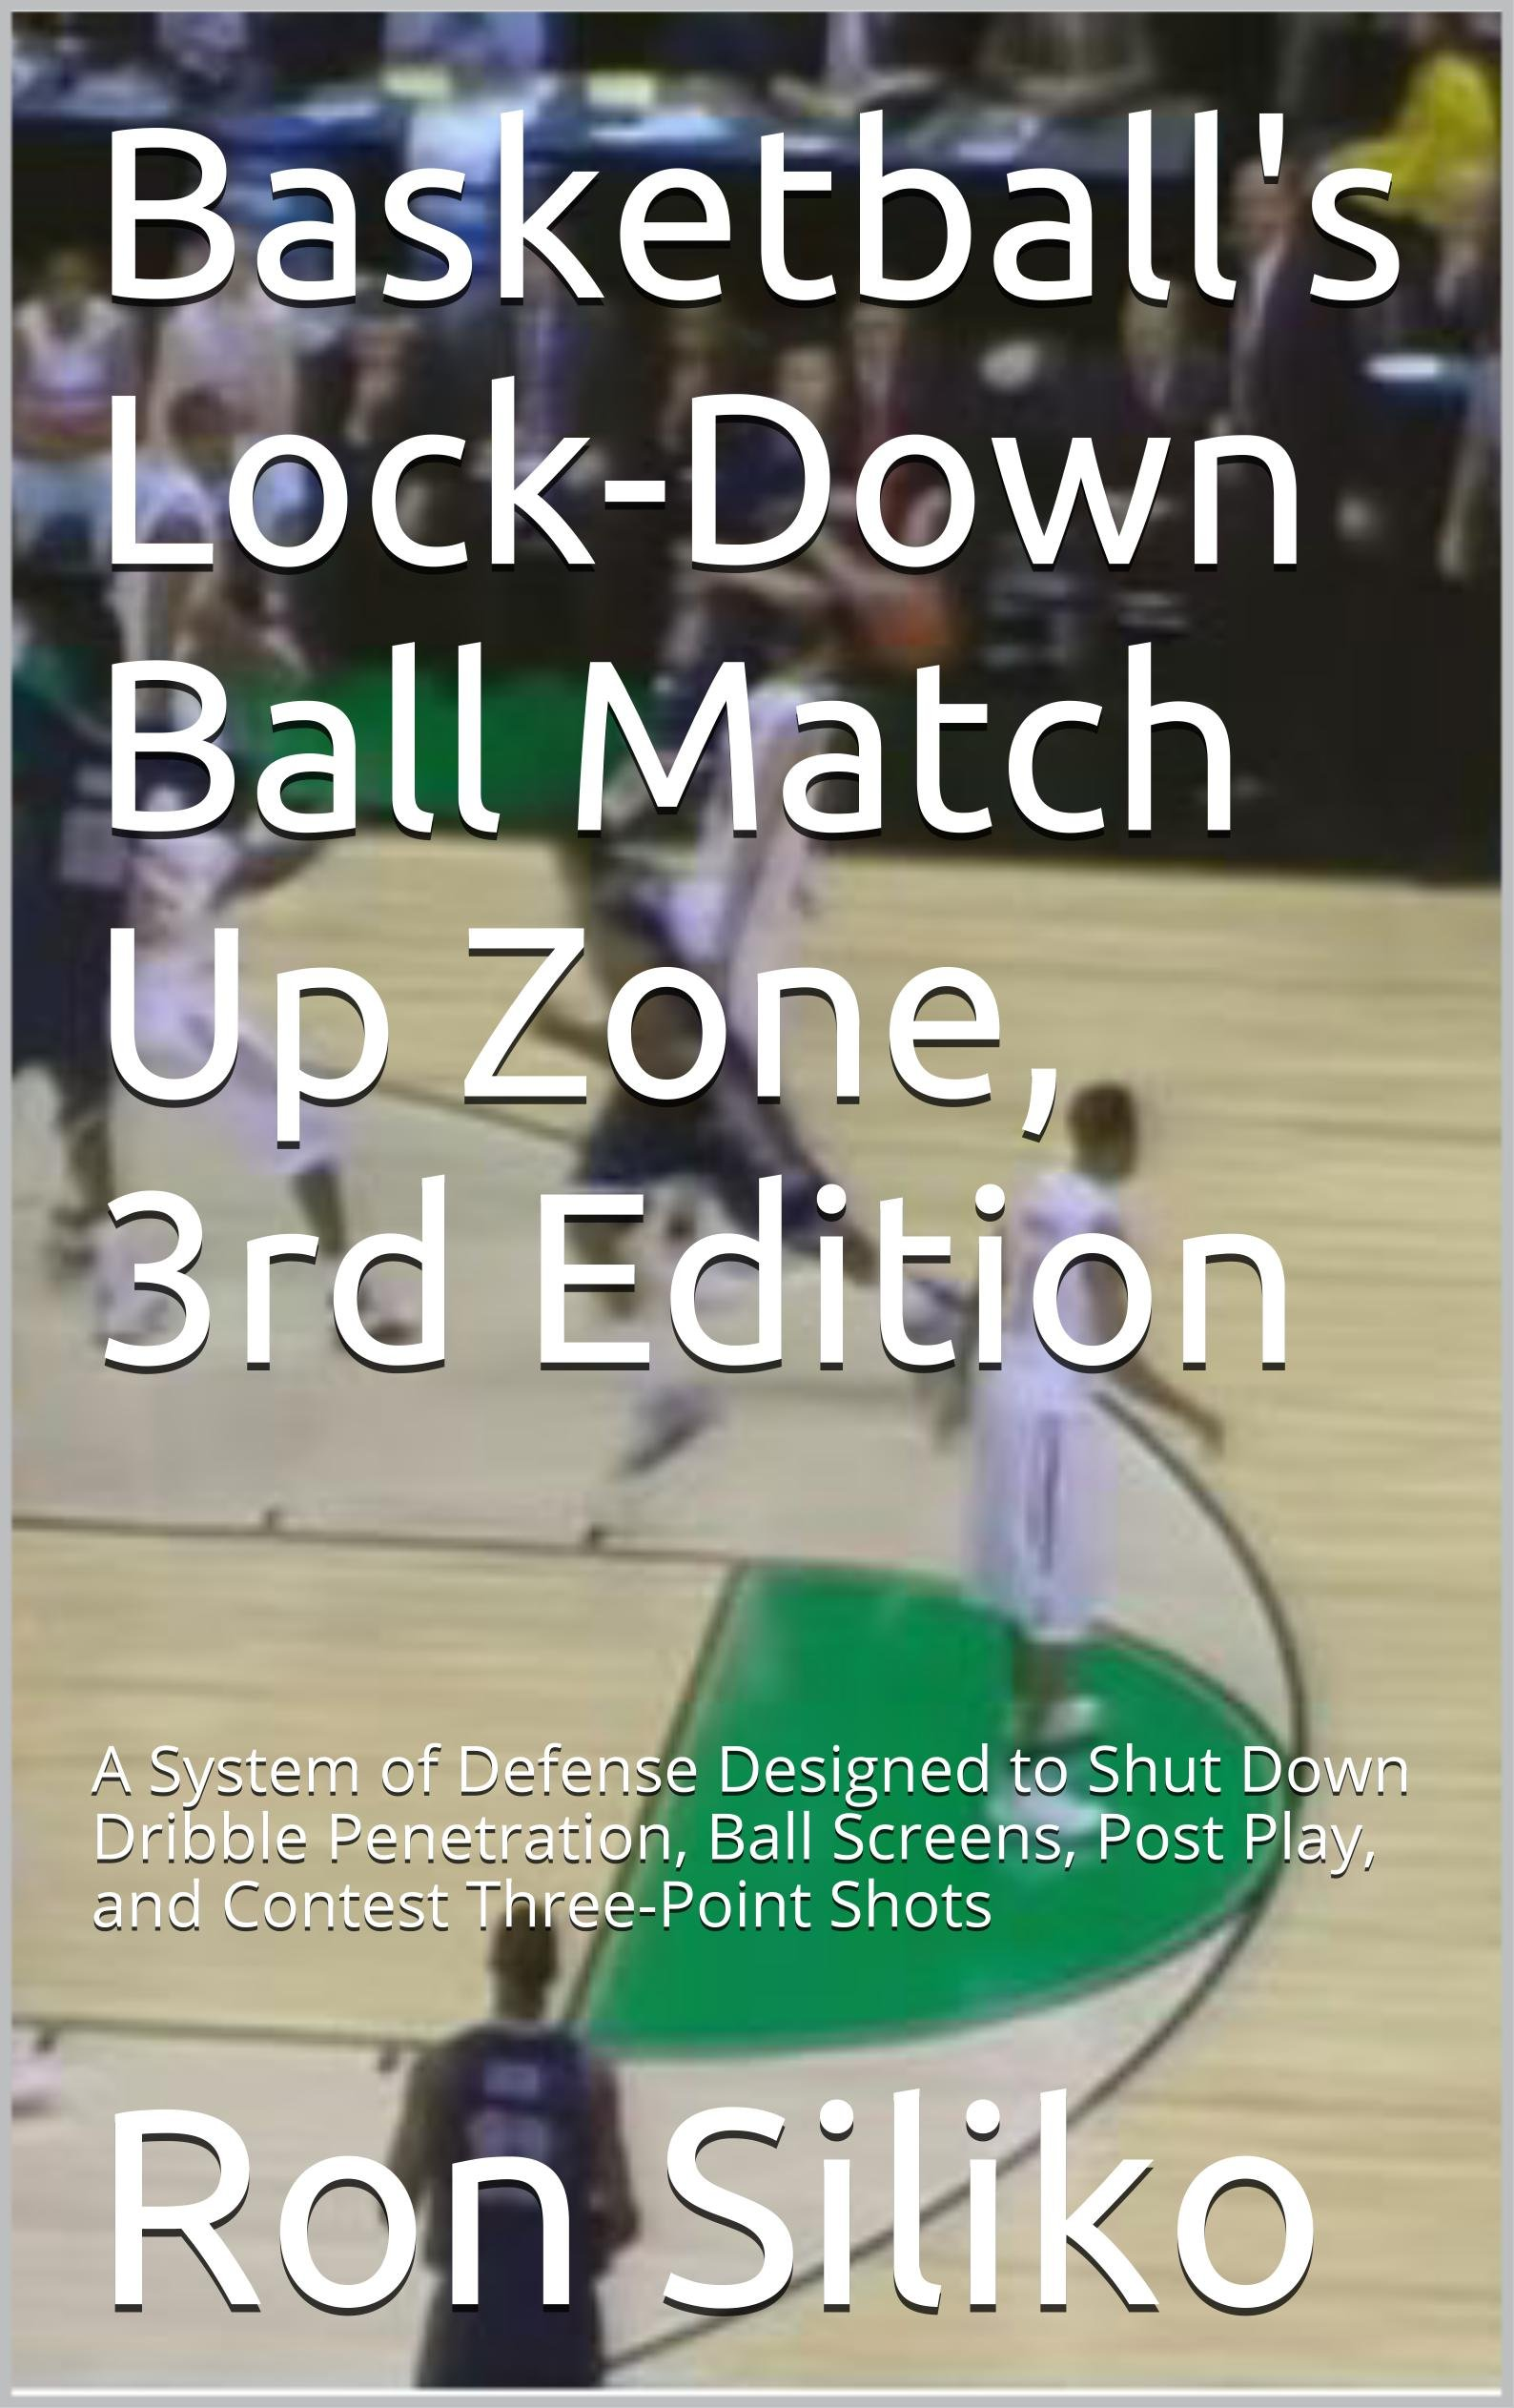 Image OfBasketball's Lock-Down Ball Matchup Zone, 3rd Edition: A System Of Defense Designed To Shut Down Dribble Penetration, Ball...